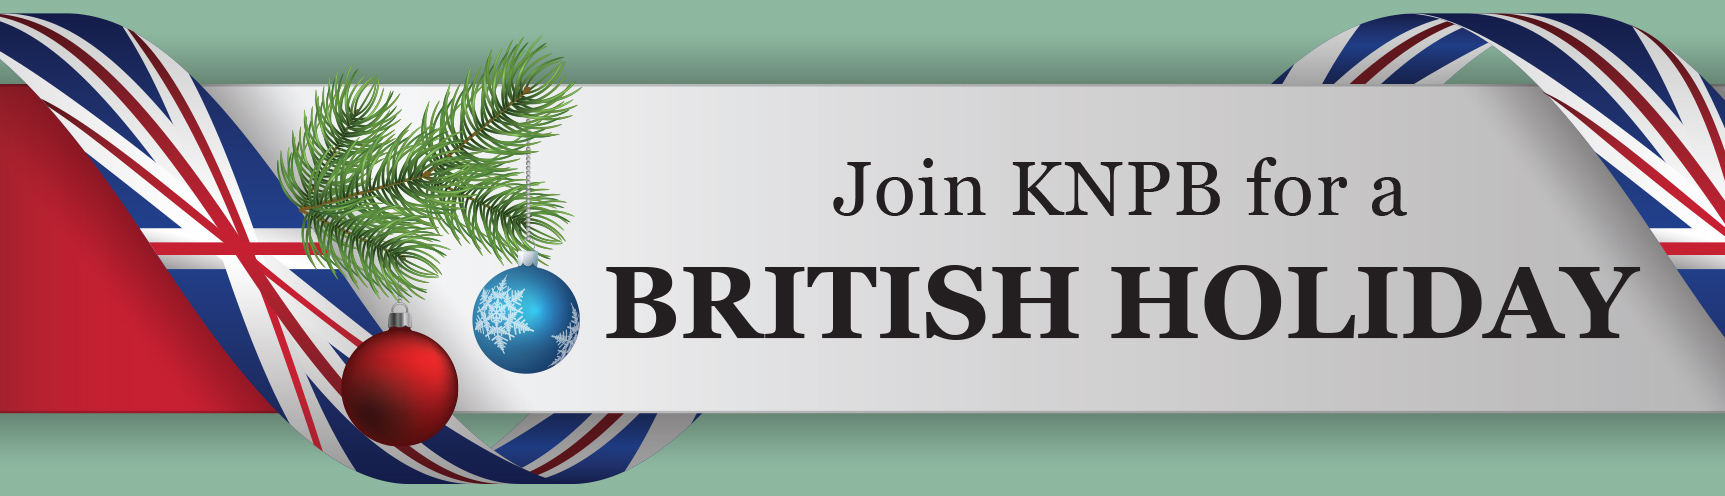 Join KNPB for a British Holiday